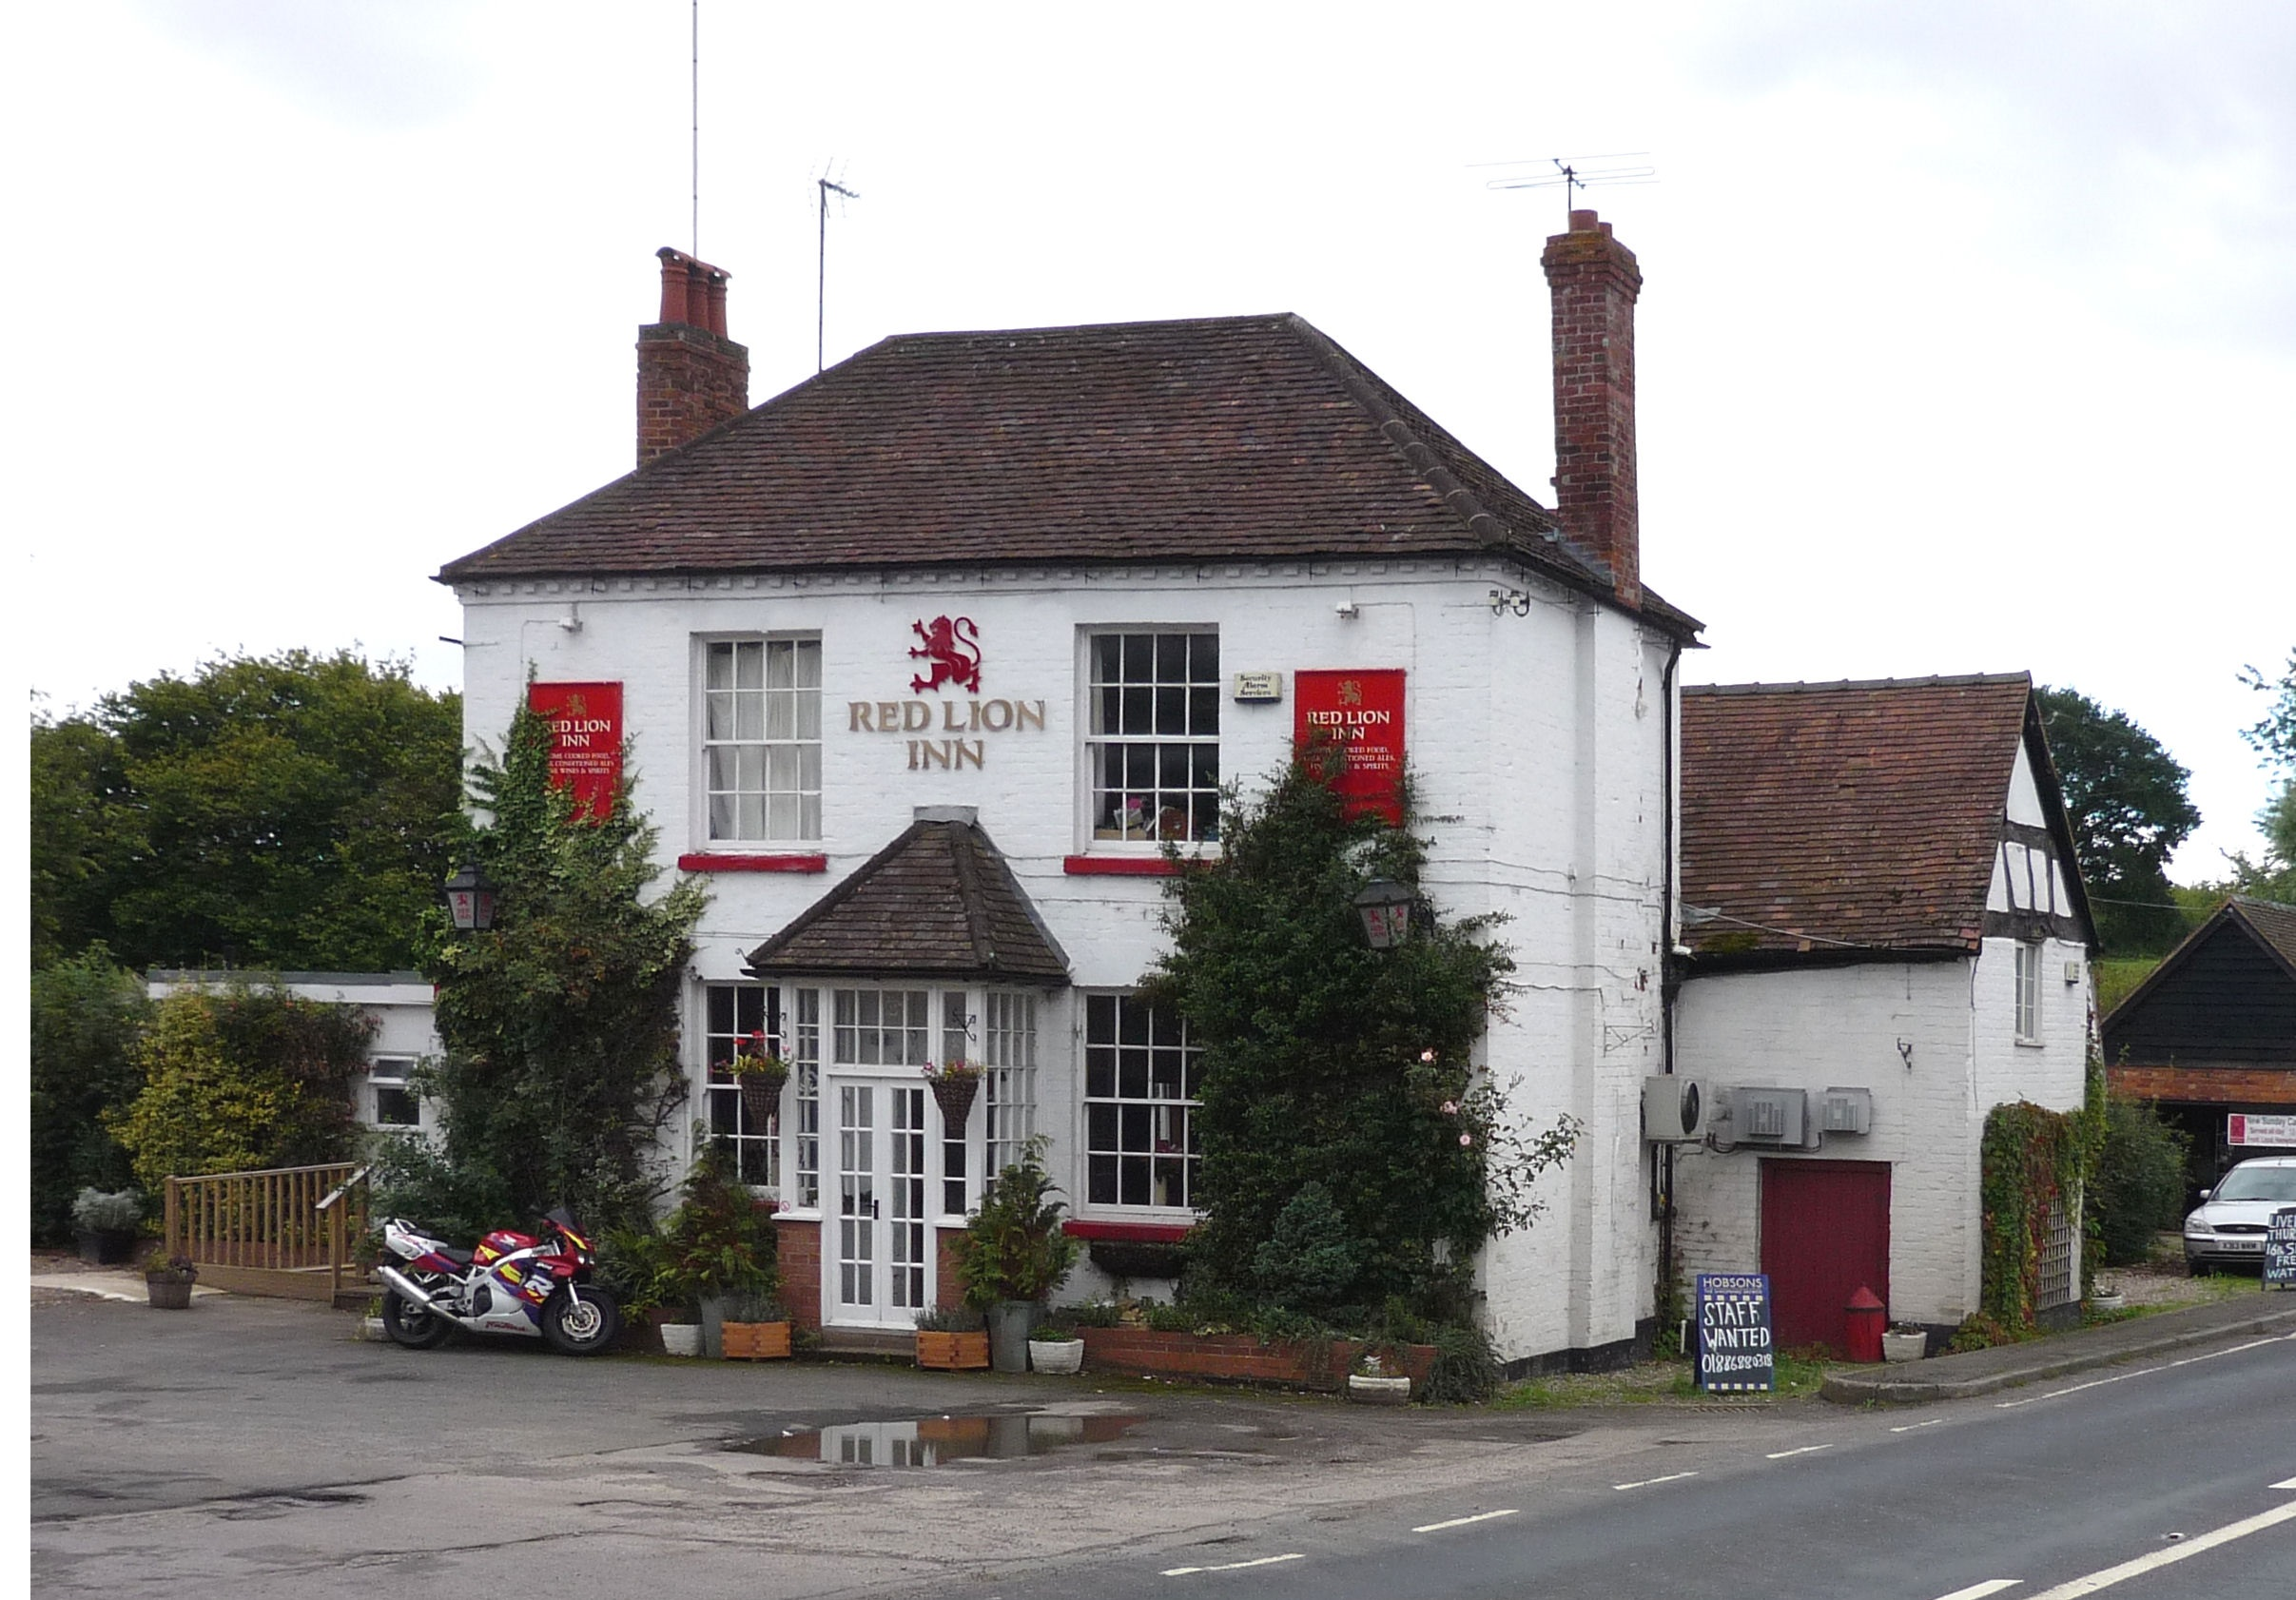 Red lion, Stiffords Bridge